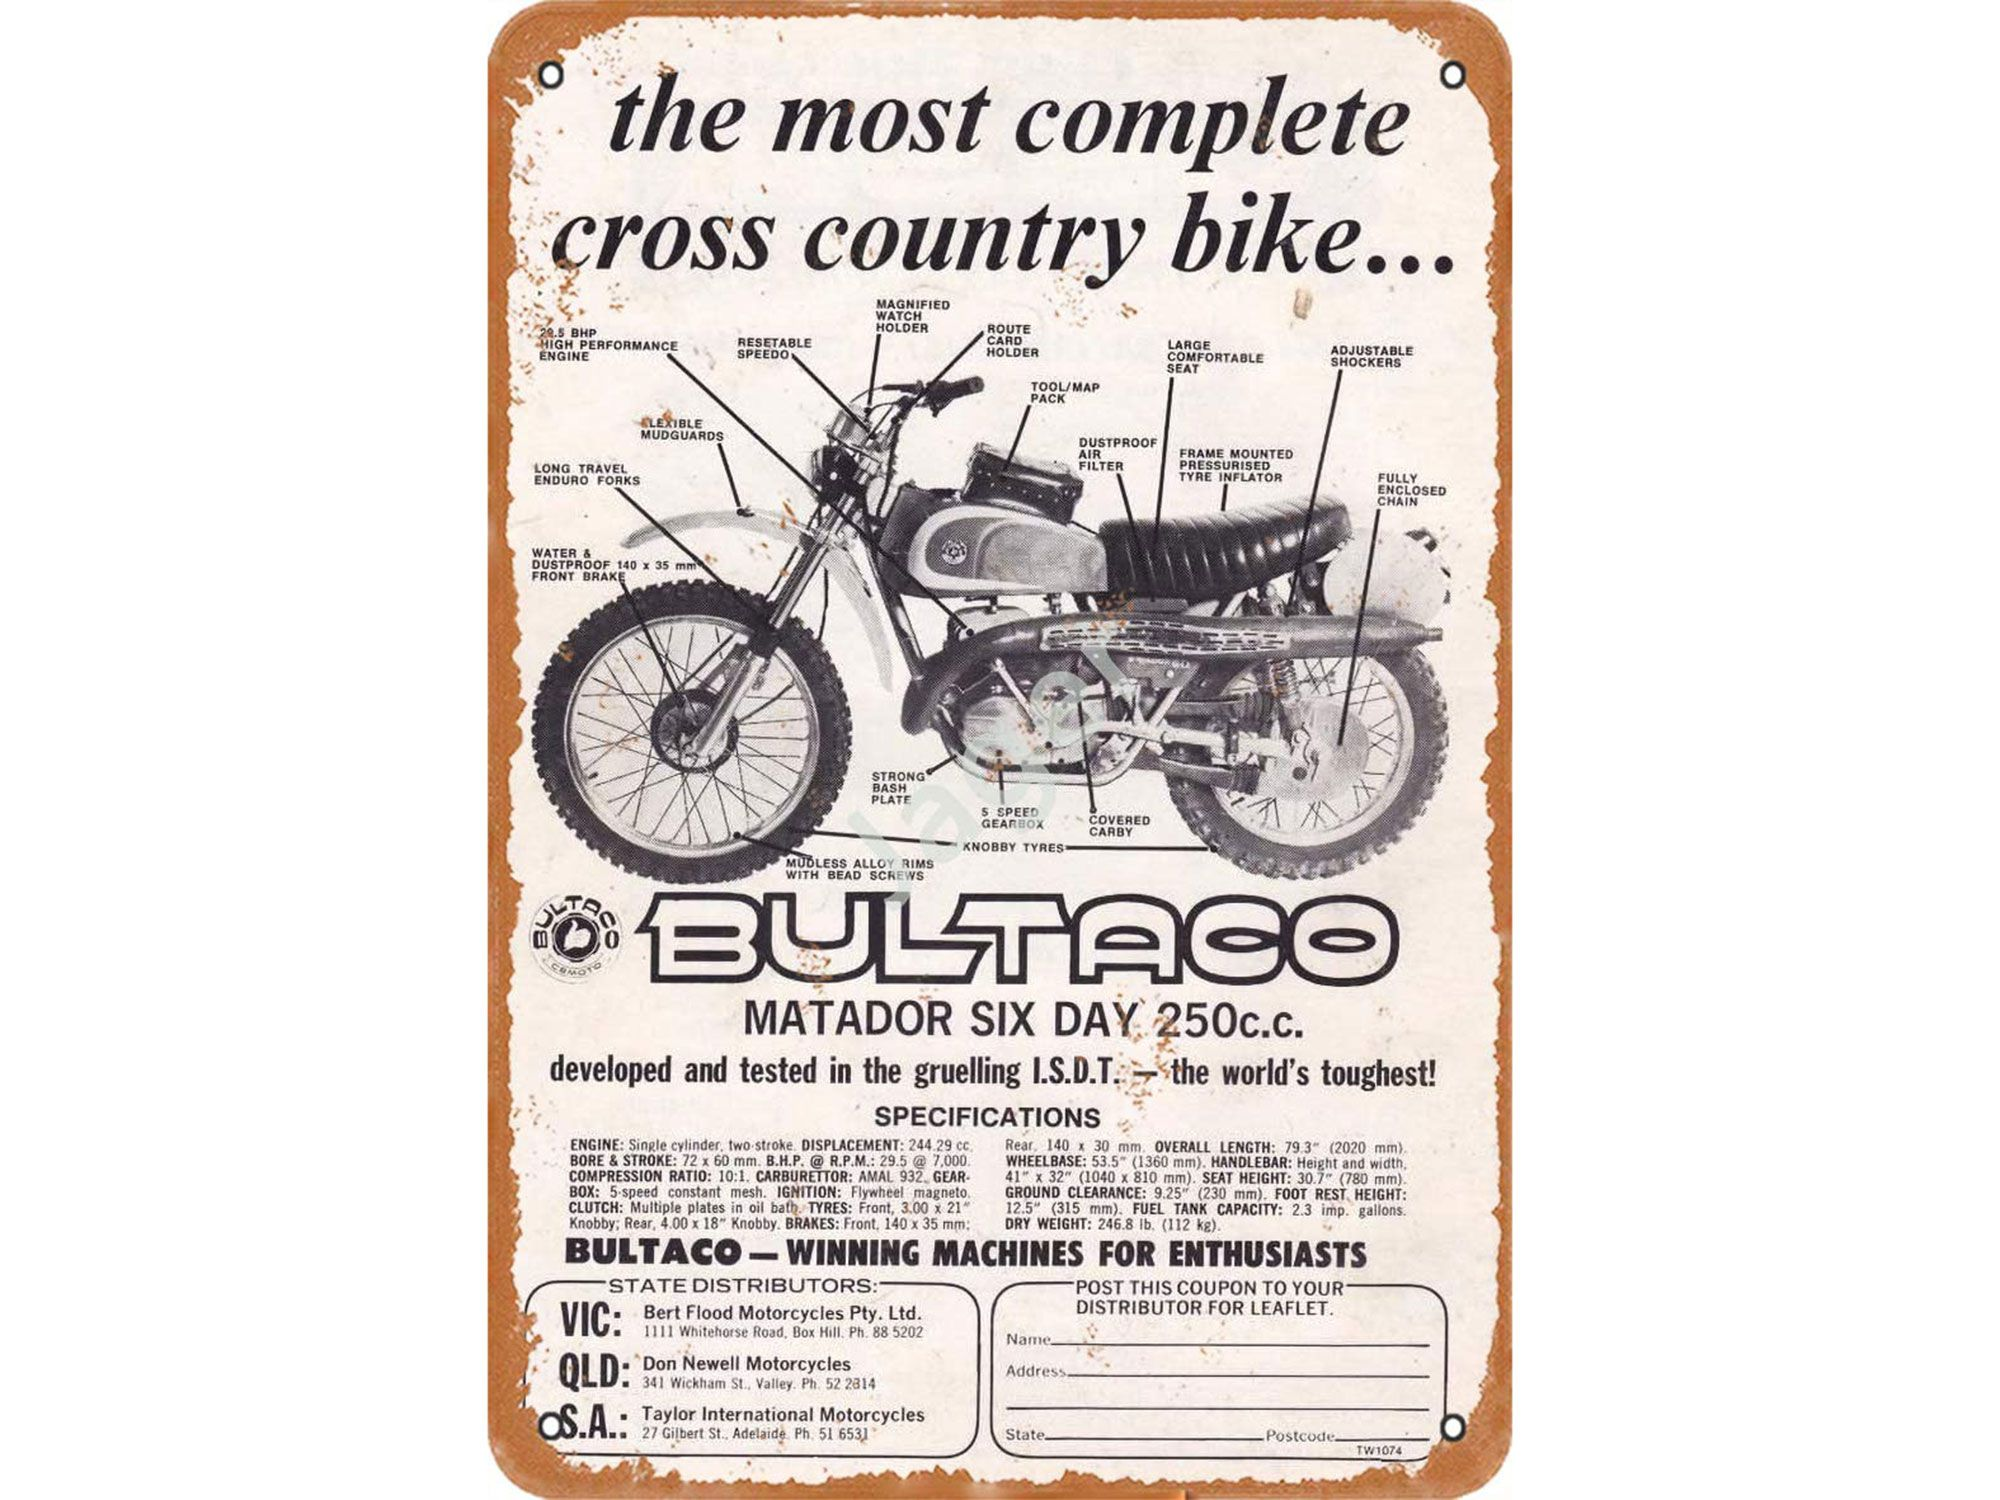 Bultaco saw the possibilities of placing a lightweight engine in a minimal package to appeal to the off-road crowd.